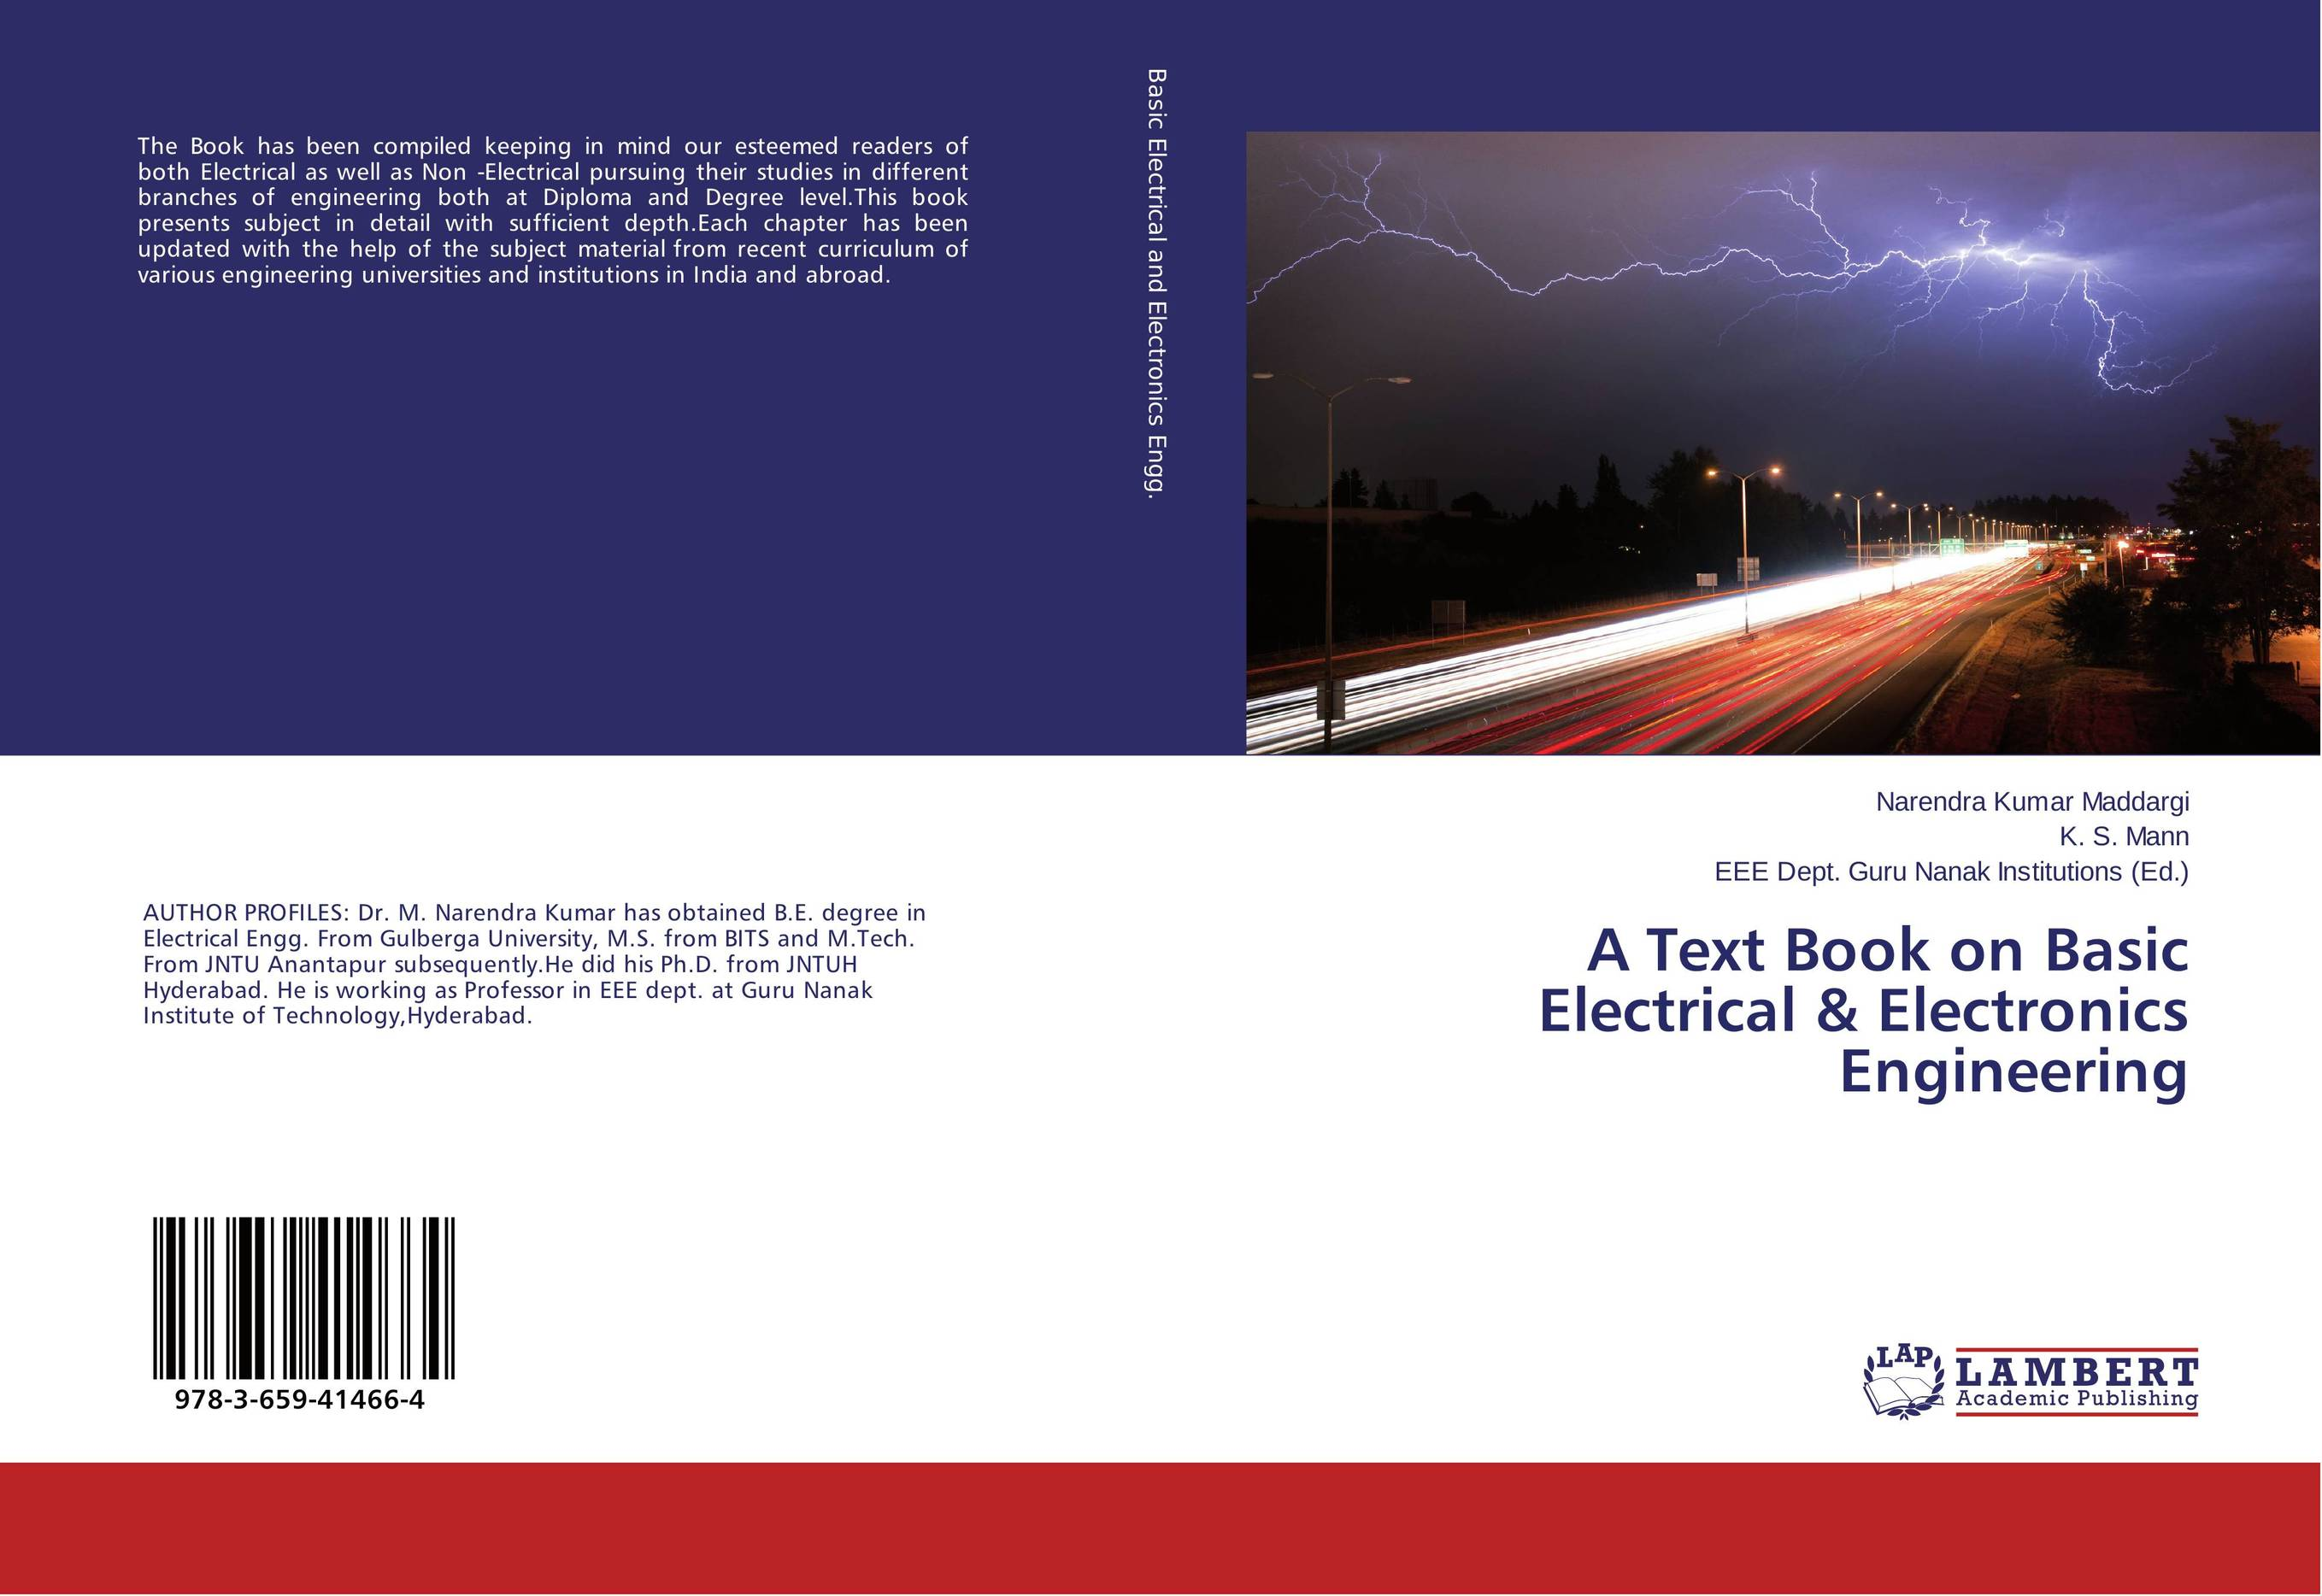 A Text Book on Basic Electrical & Electronics Engineering juan martinez vega dielectric materials for electrical engineering